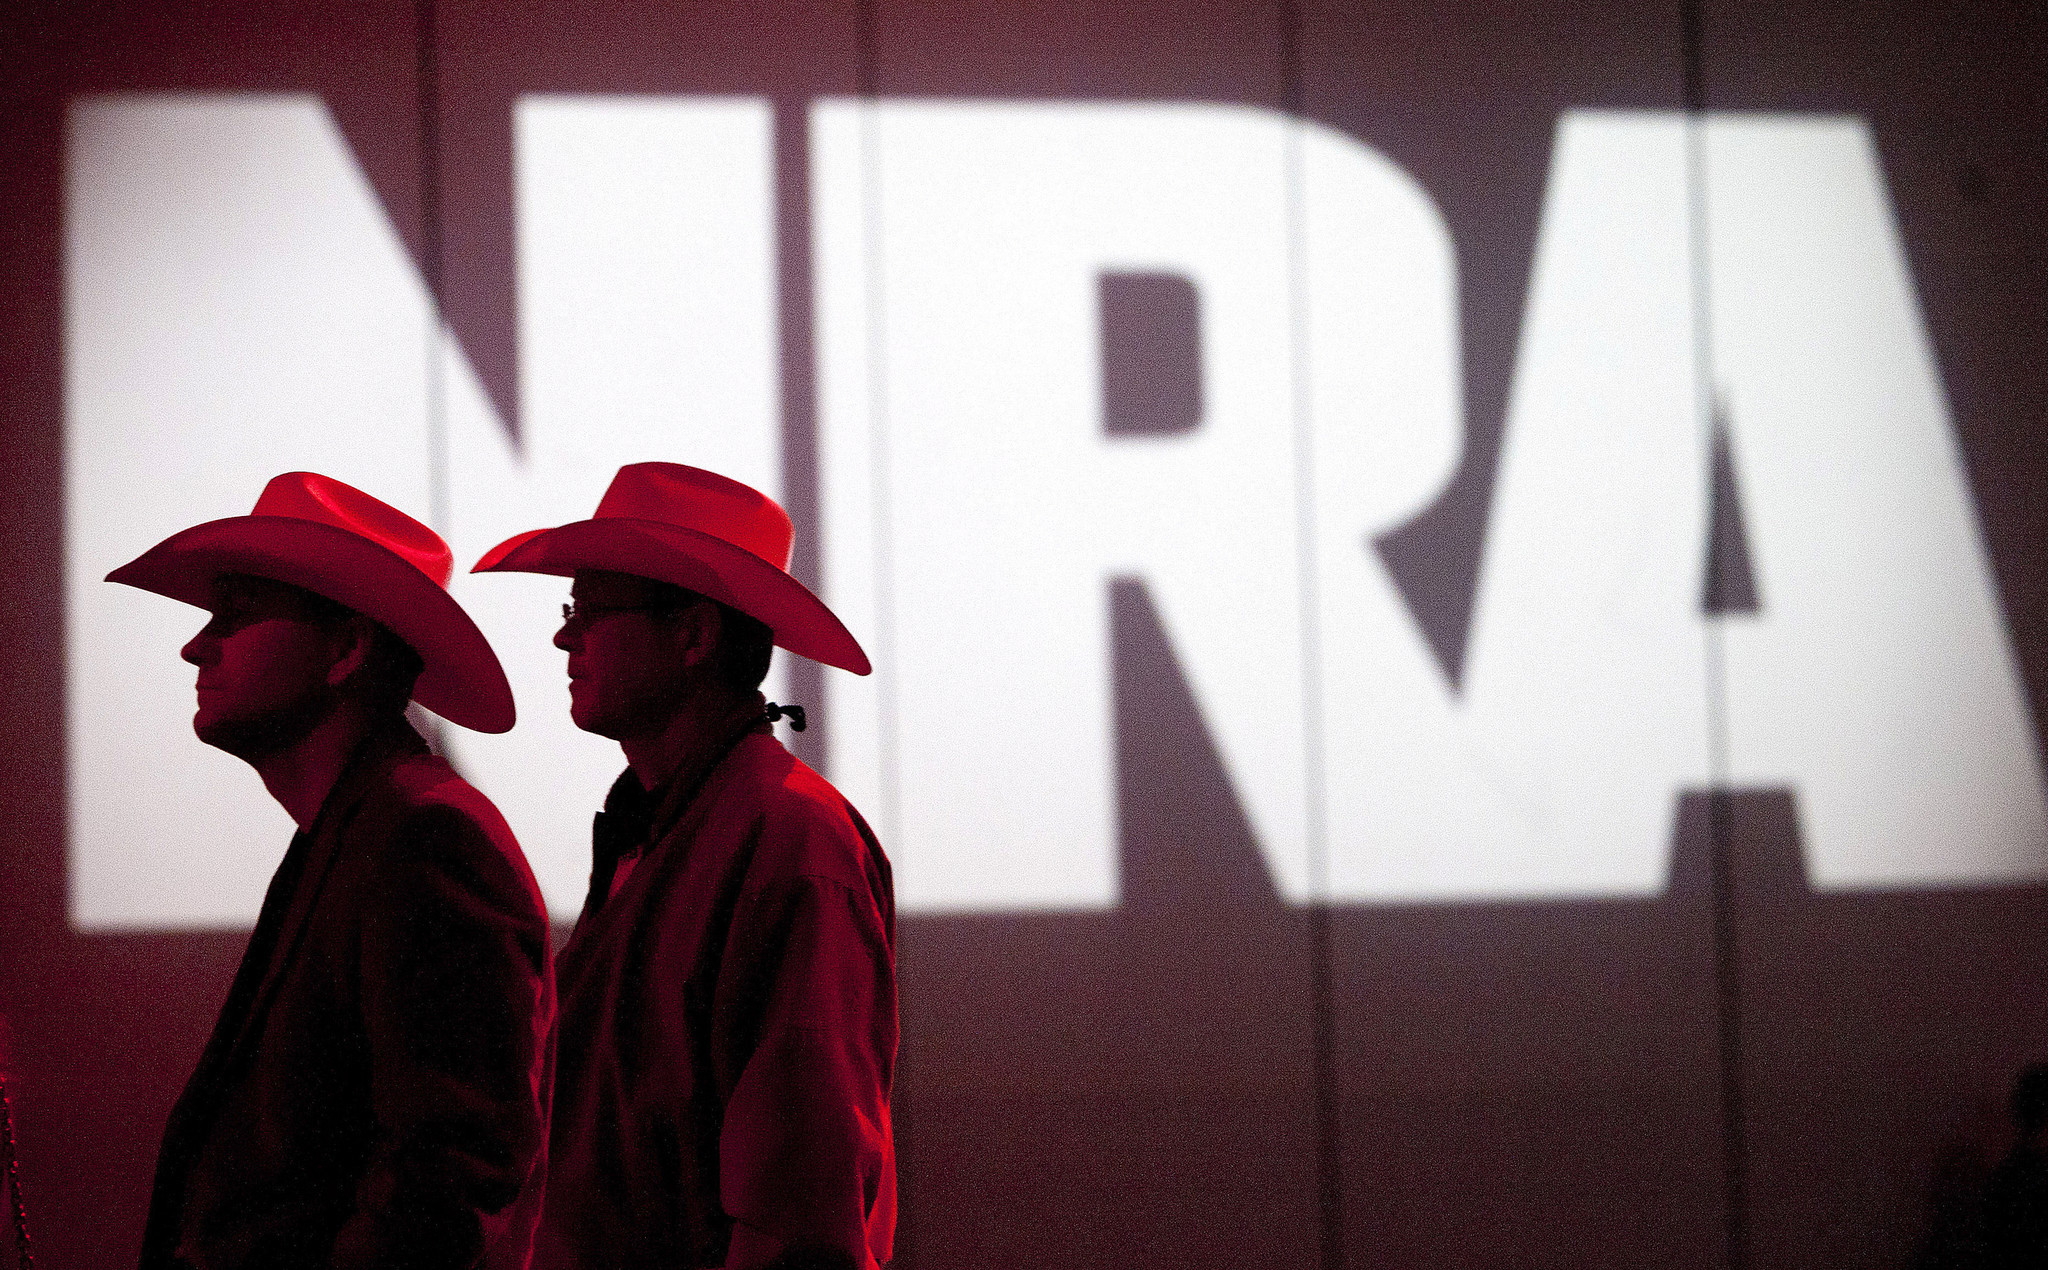 Inside the NRA's war with itself: Some members question if the organization has strayed too far and become too political